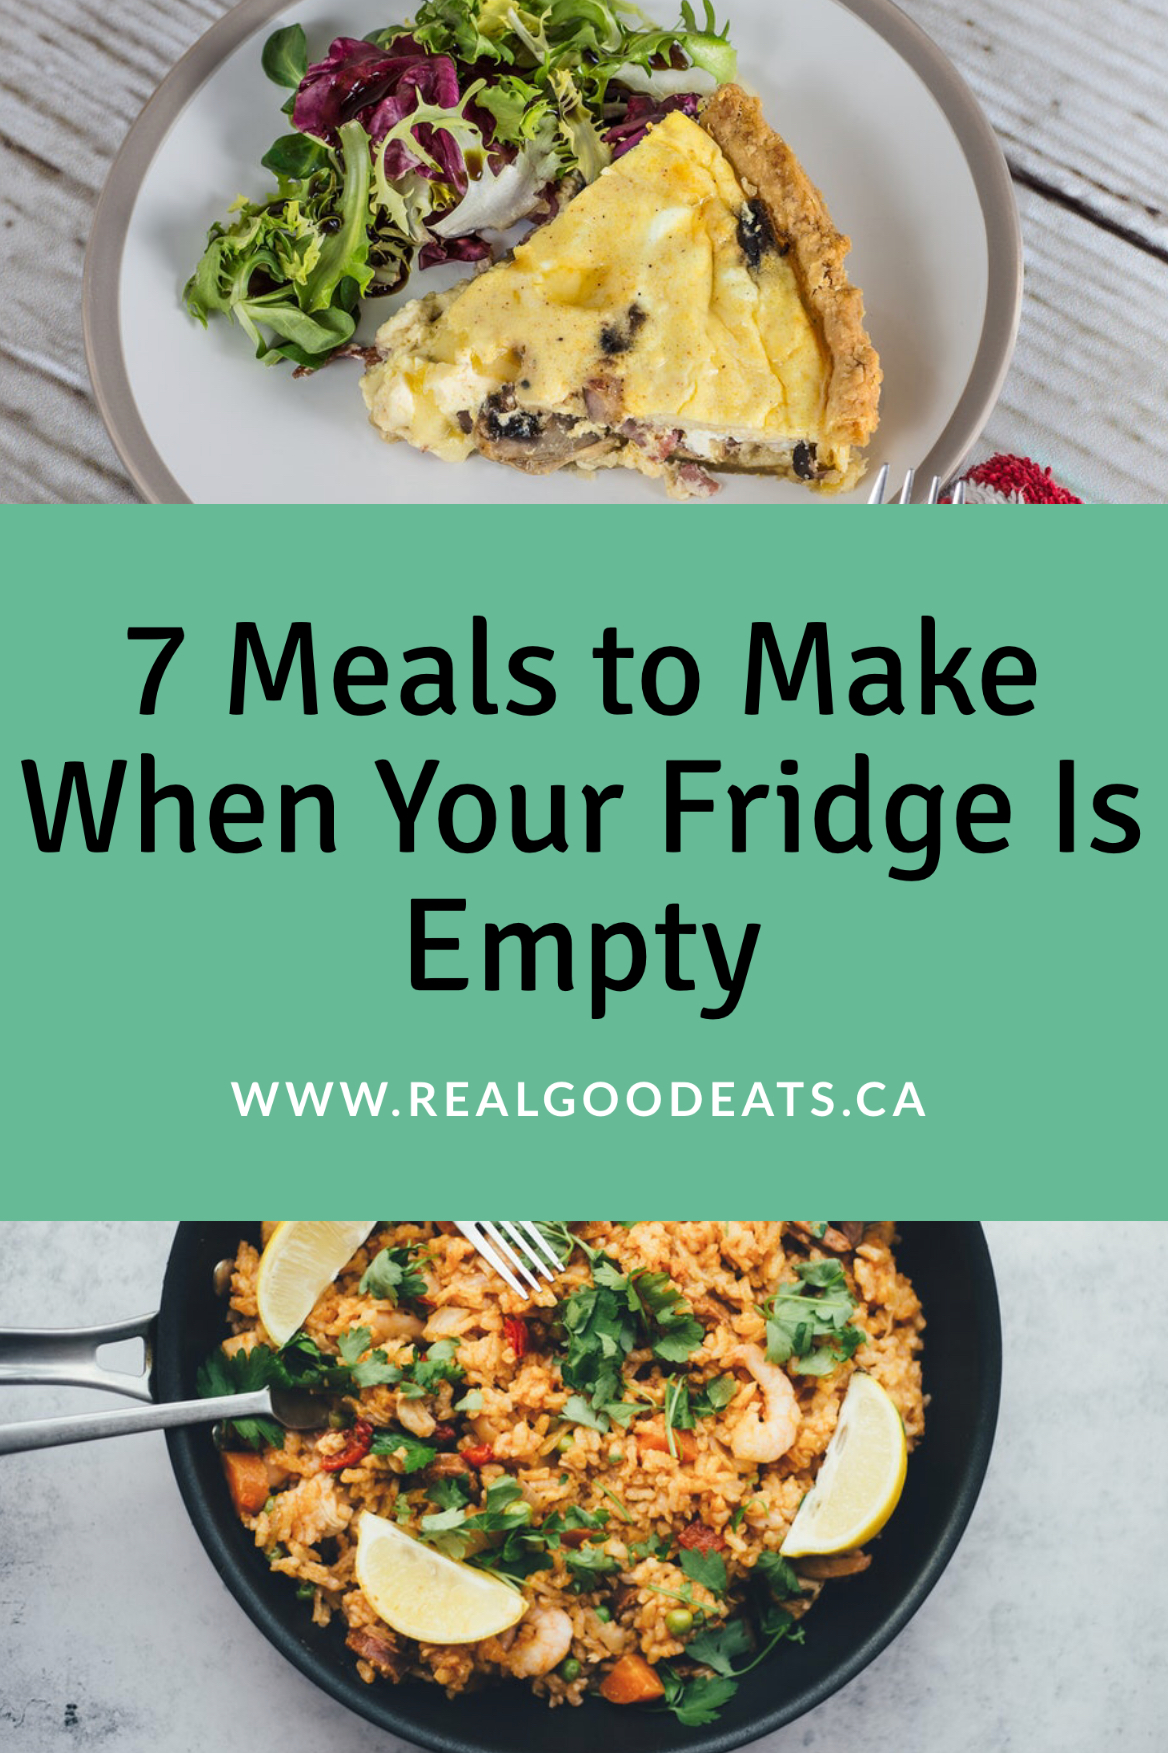 7 meals to make when your fridge is empty blog graphic